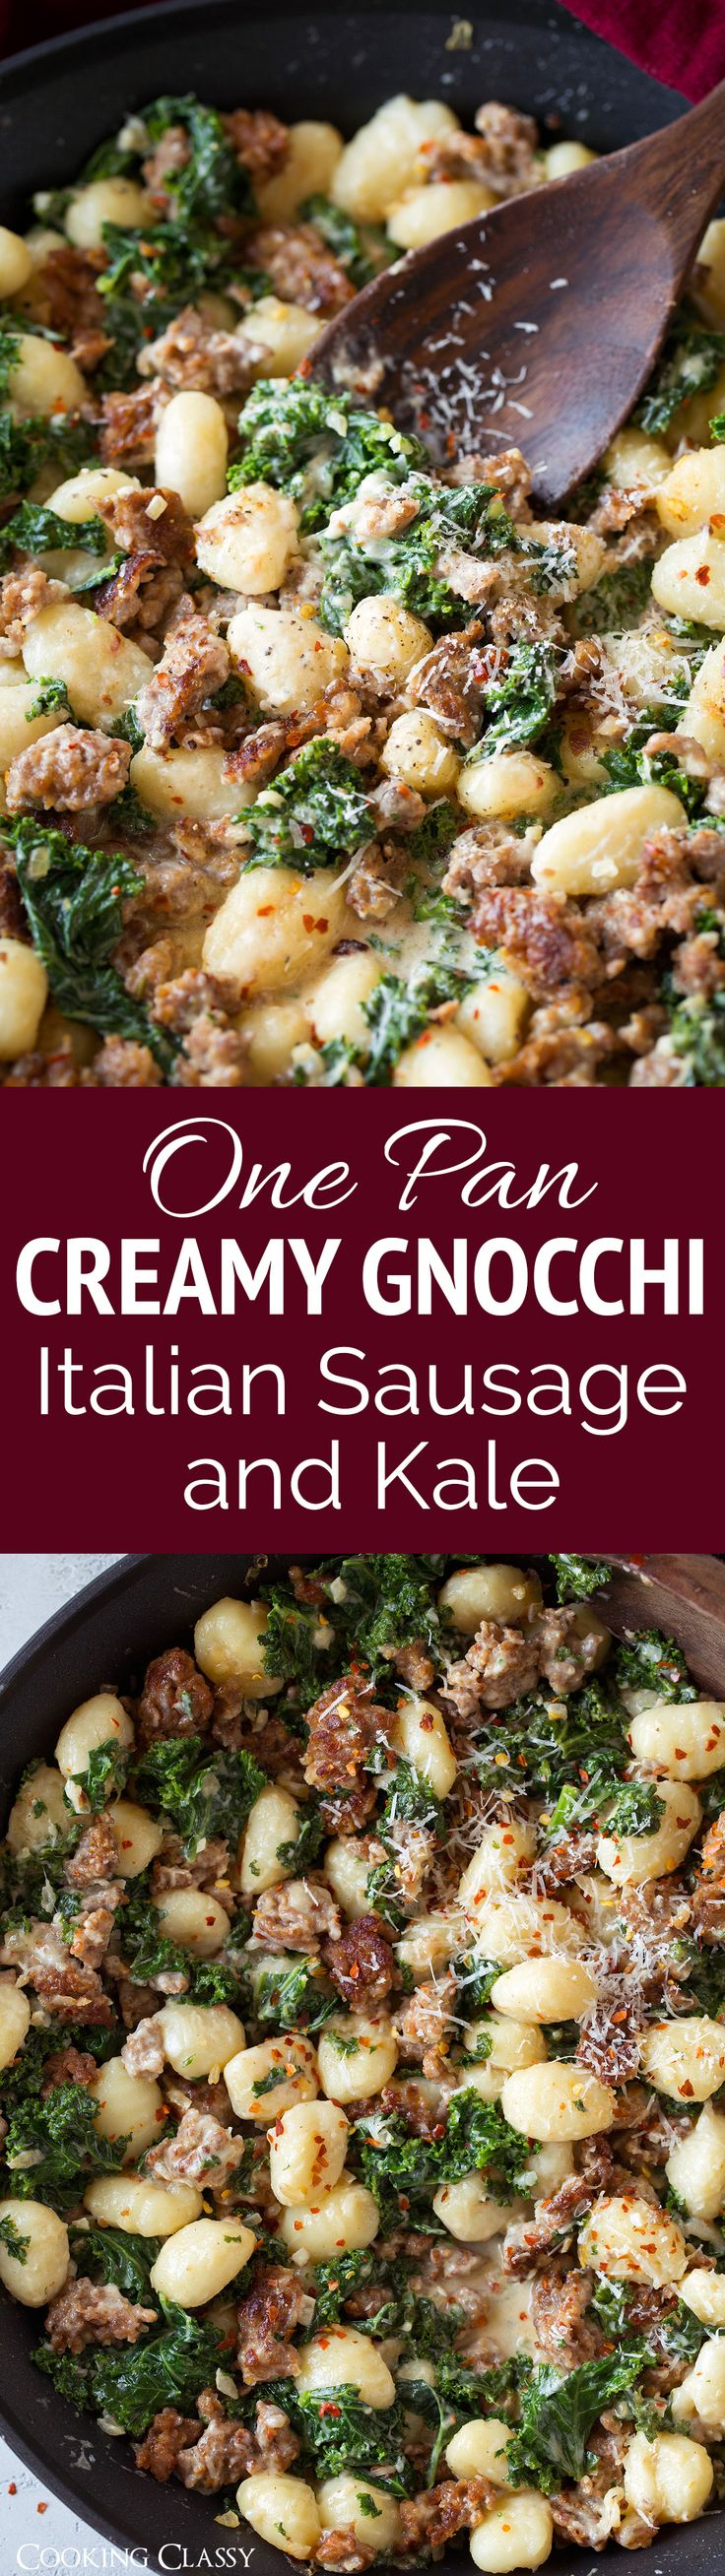 This is pure comfort food! A quick and easy plus seriously satisfying gnocchi dinner that's all cooked in one pan. You'll want this one on repeat!